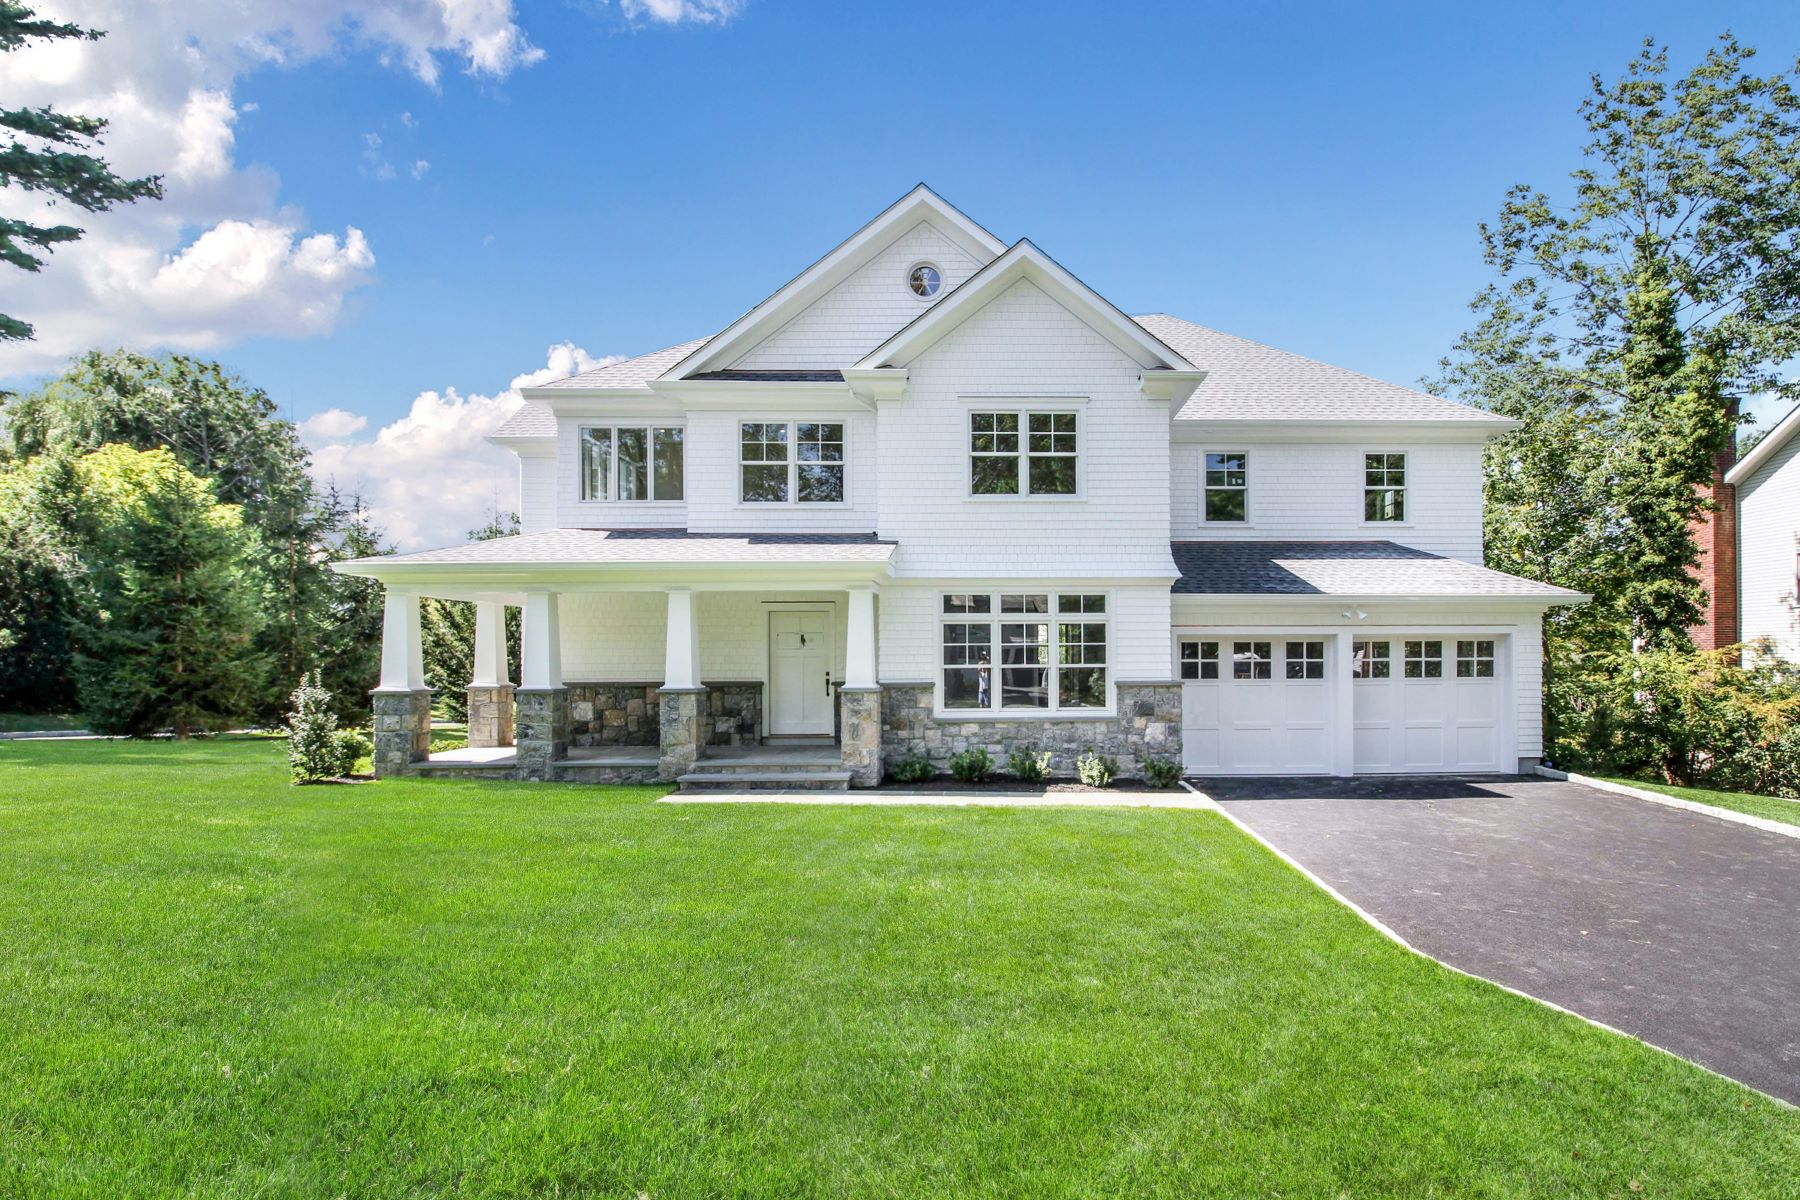 Single Family Homes for Active at Stunning New Construction in Exclusive Grange Estate Area of Scarsdale 26 Fairview Road Scarsdale, New York 10583 United States